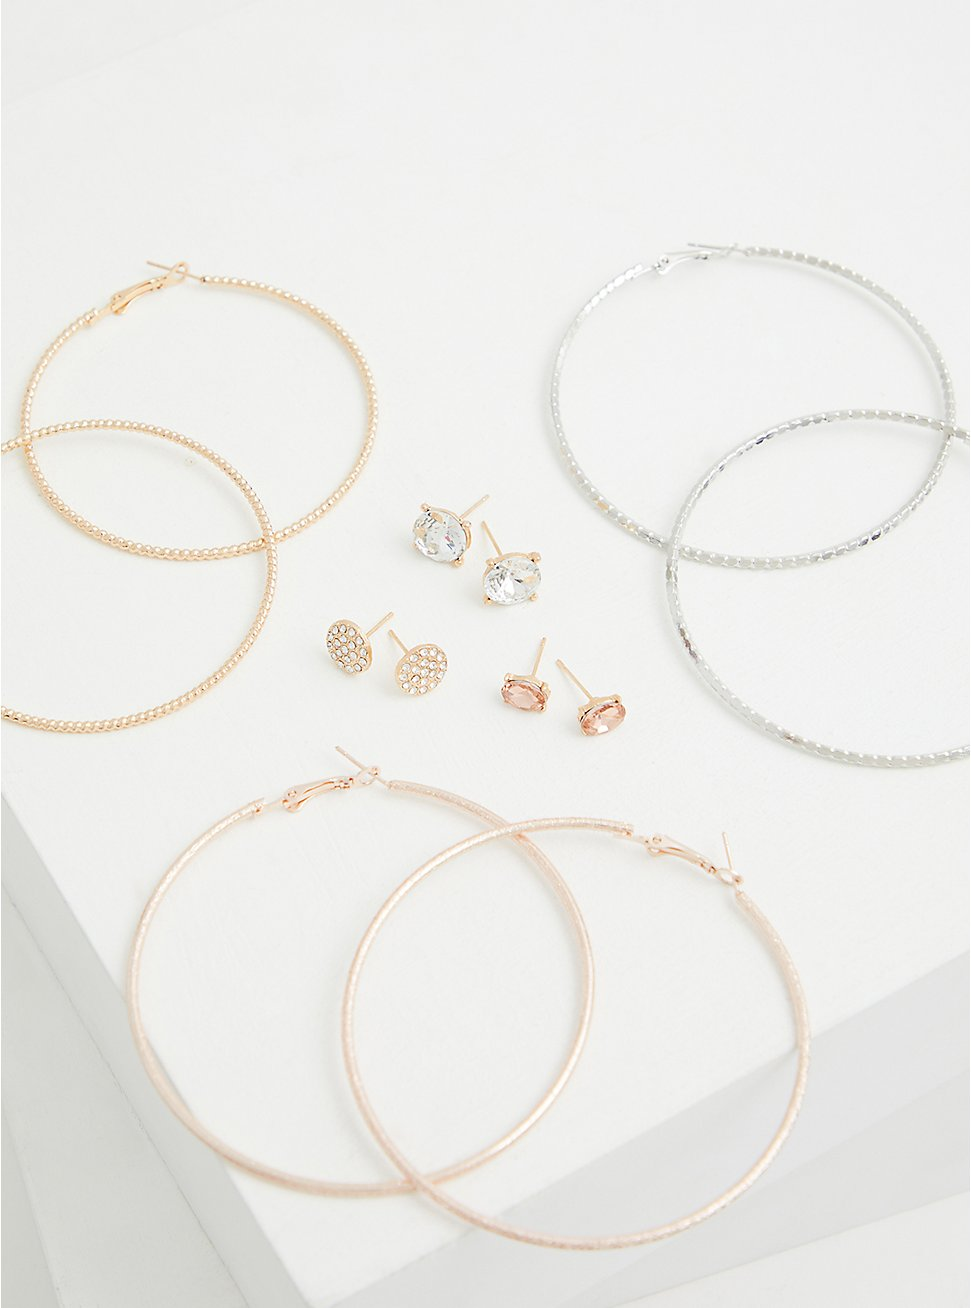 Gold-Tone Light Pink Stud & Hoop Earring Set - Set of 6, , hi-res